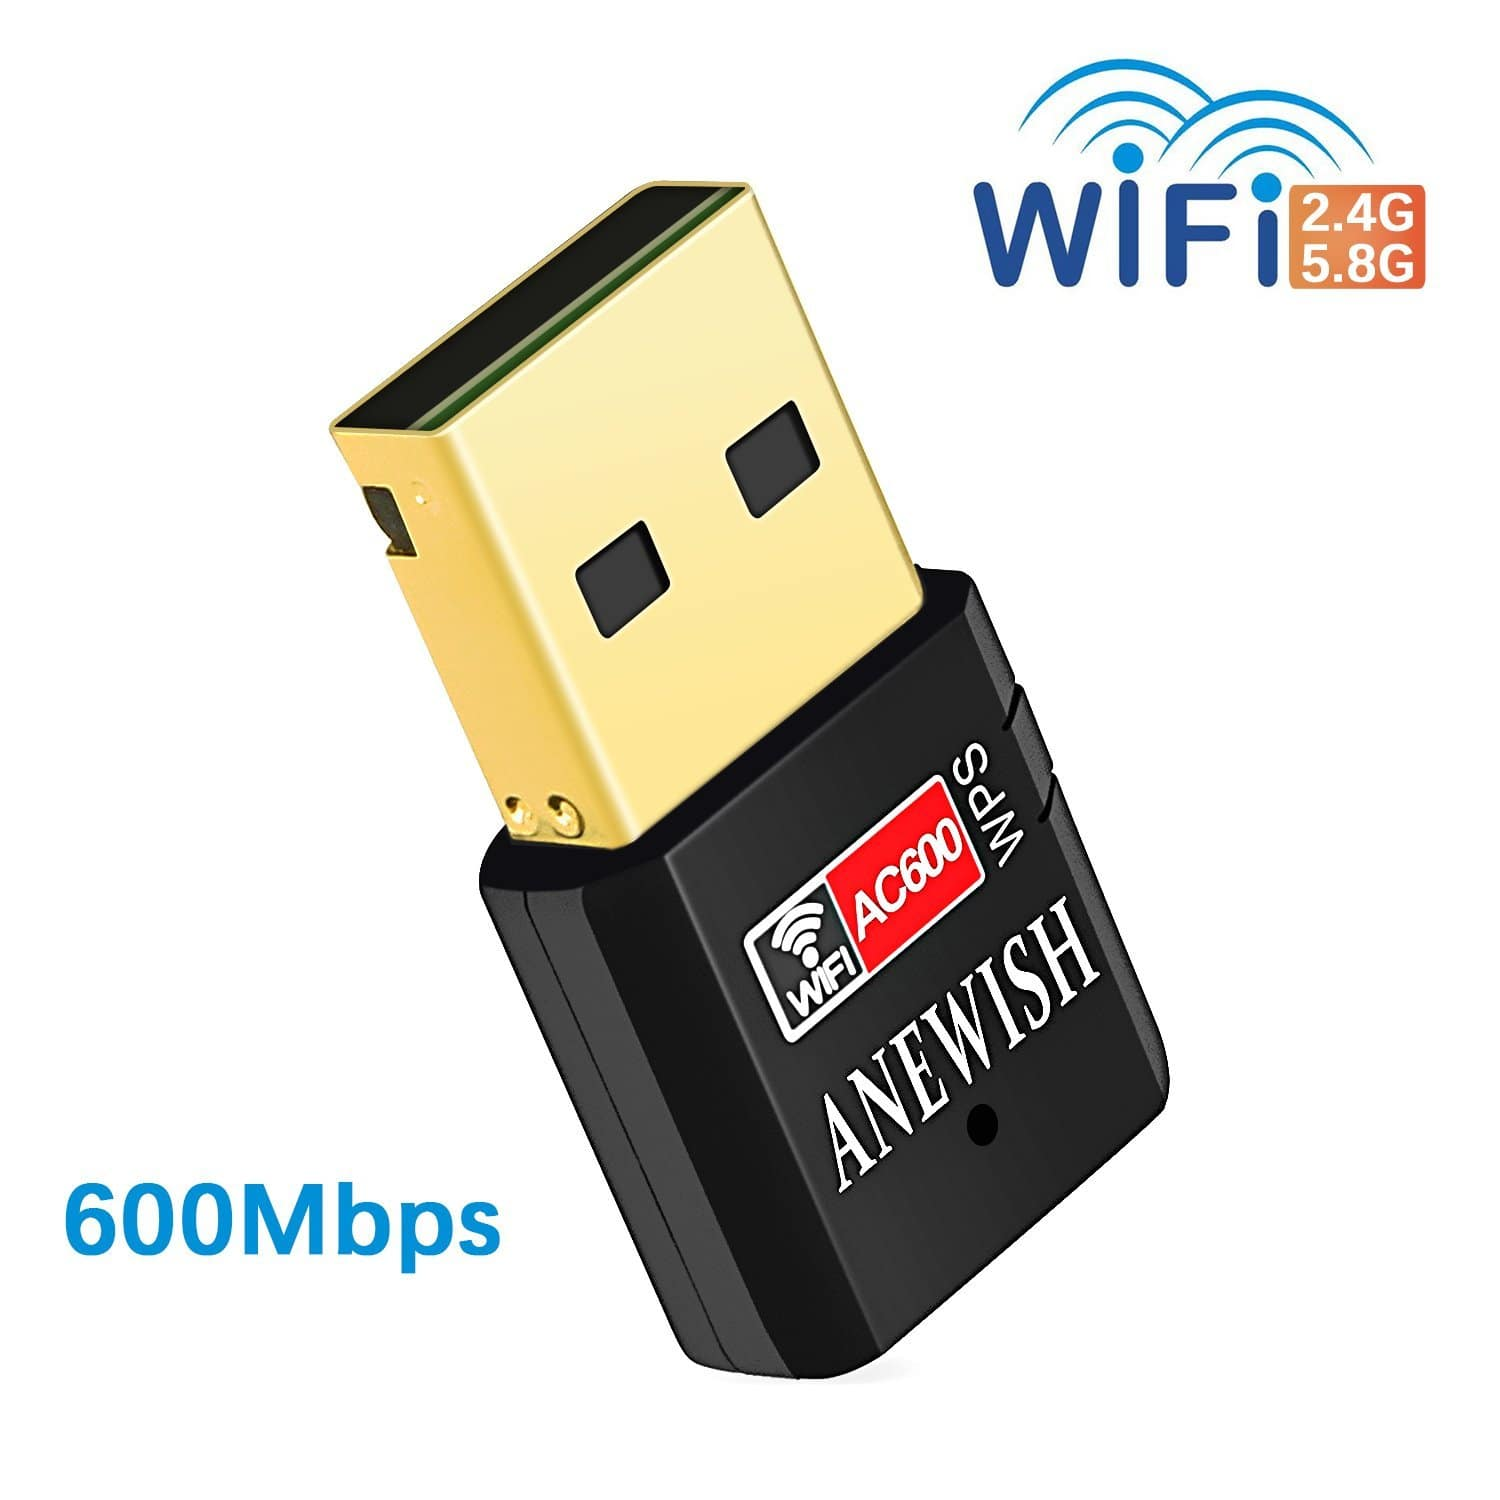 ANEWISH AC600Mbps Wifi Adapter 5G/2.4G Dual Band Mini USB Wifi Dongle $7.99